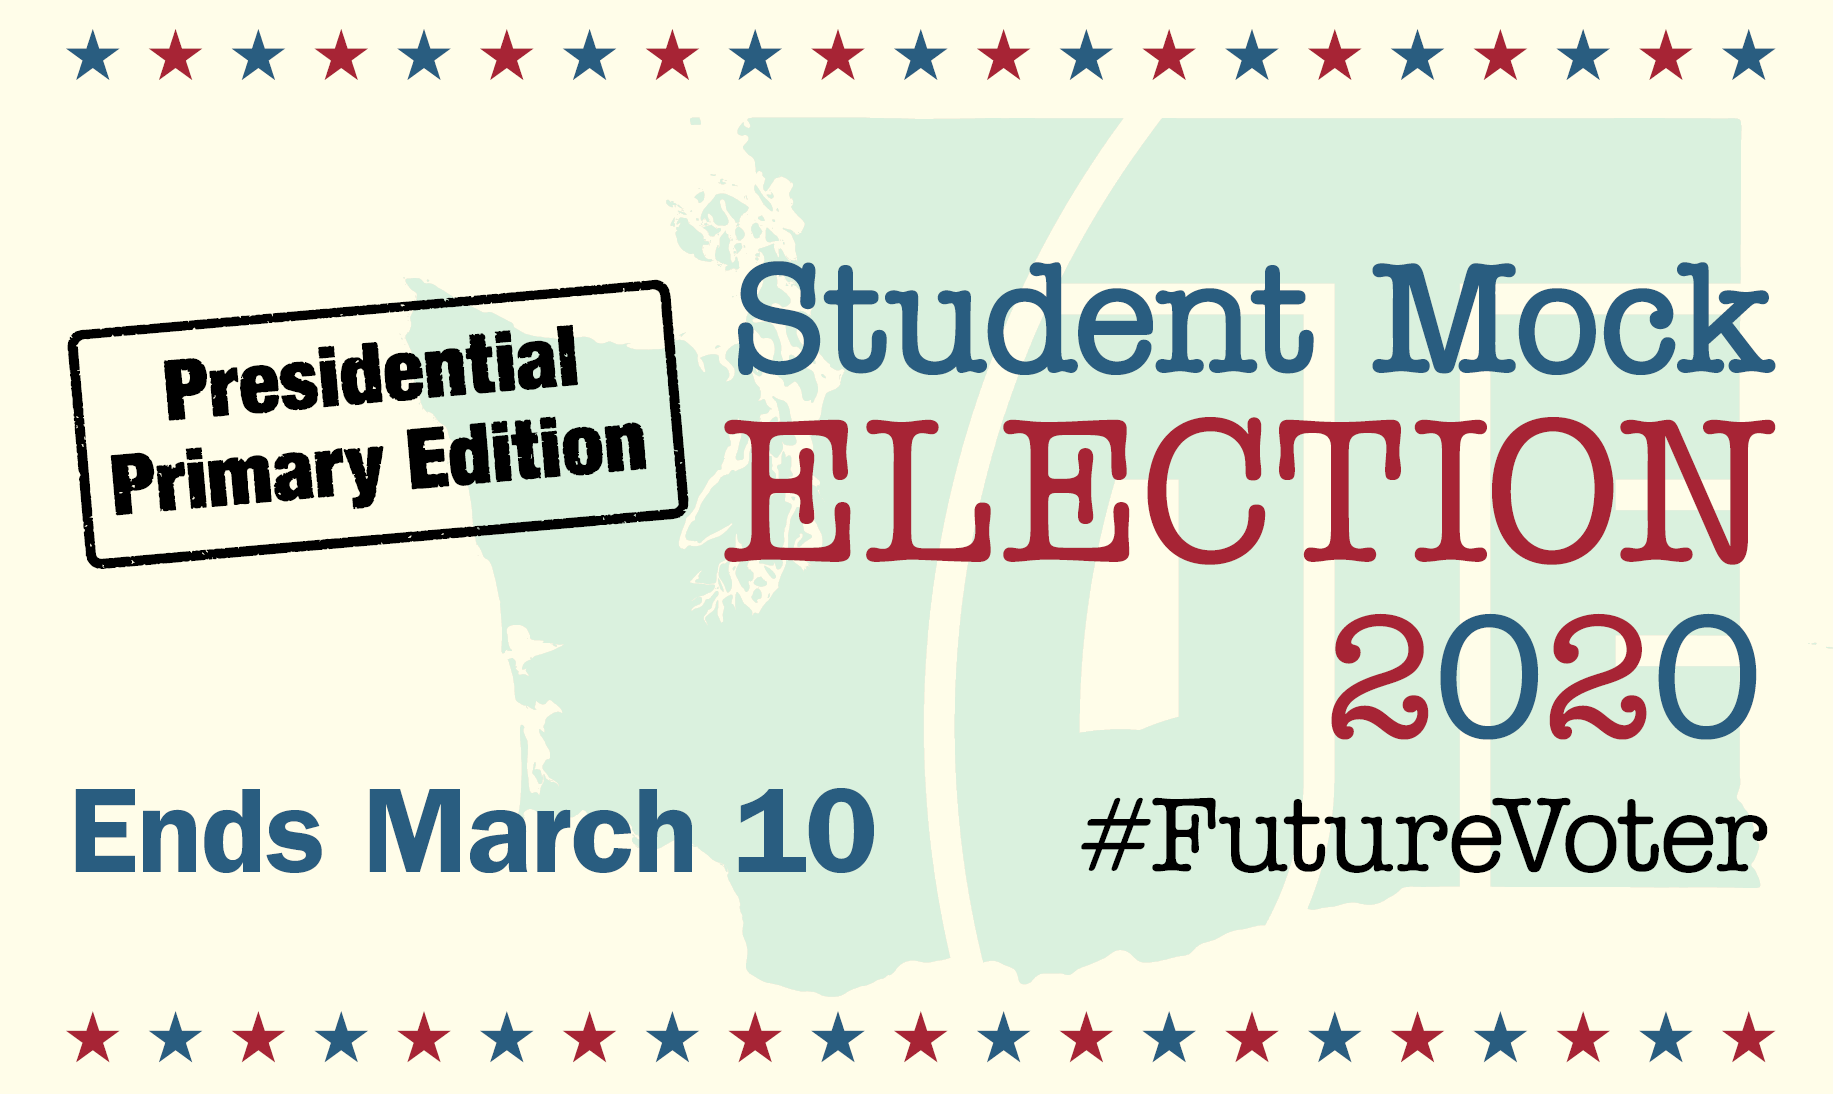 Student Mock Election for the 2020 Presidential Primary